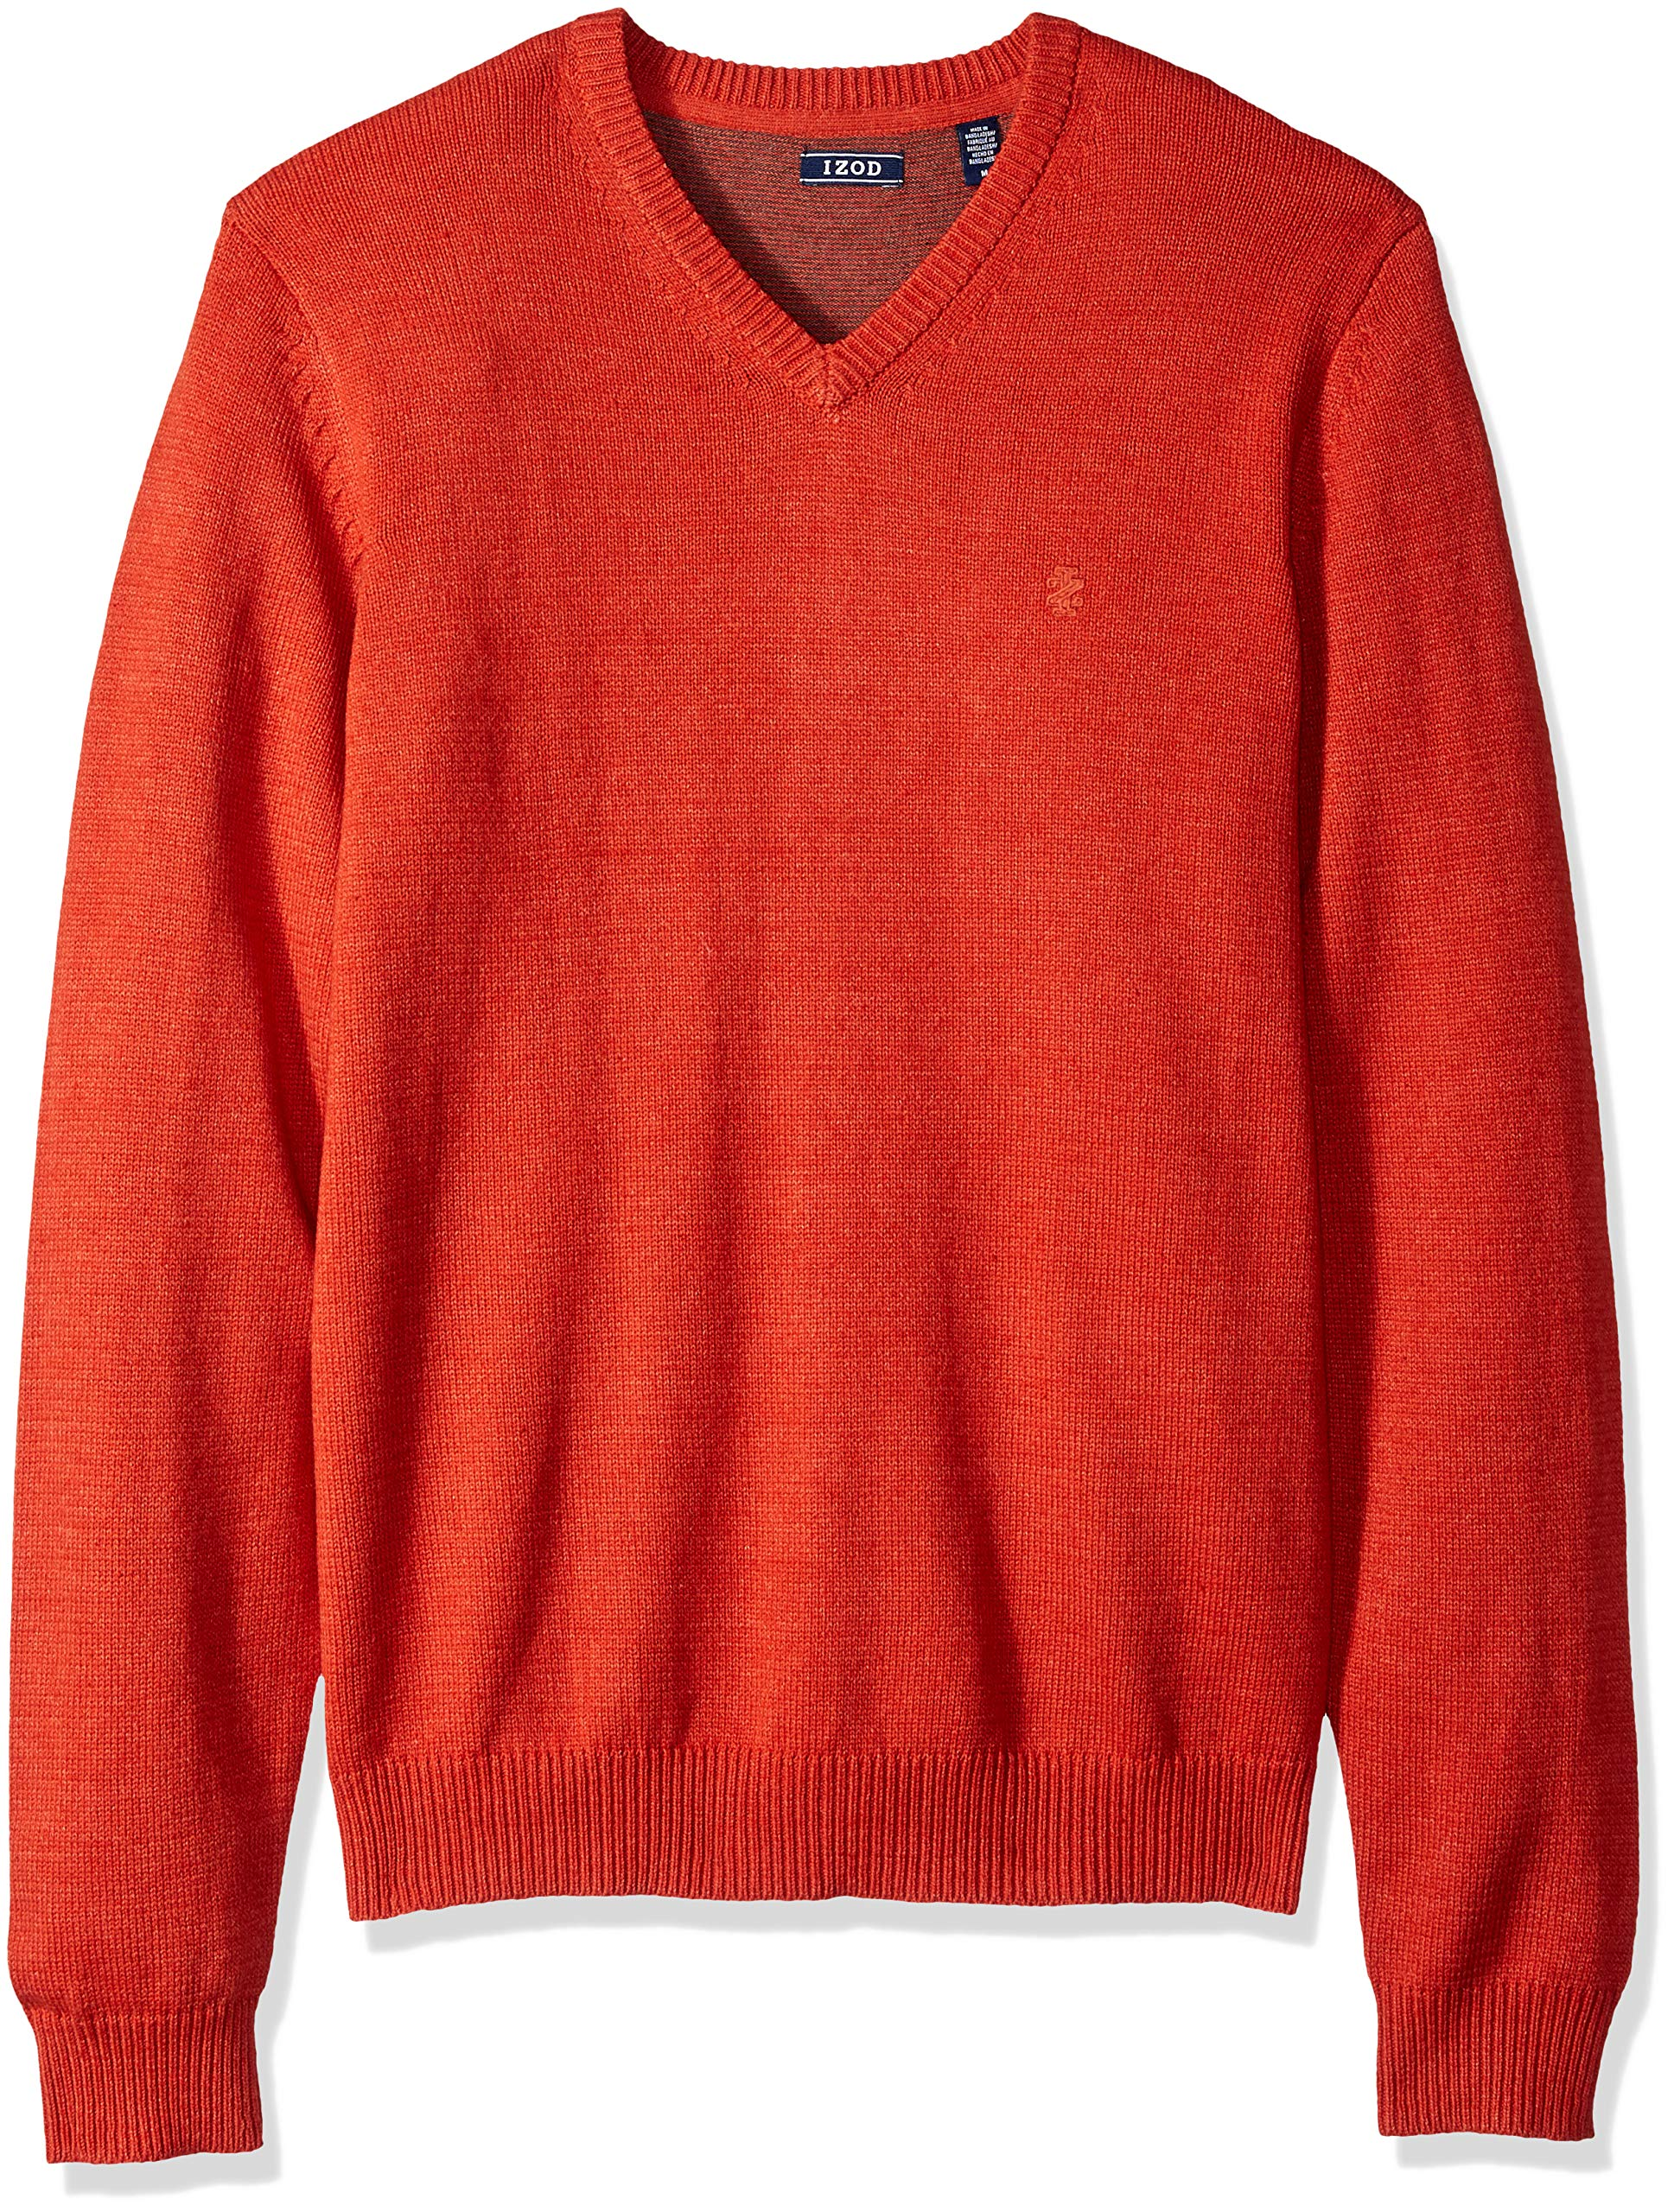 IZOD Men's Fine Gauge Solid V-Neck Sweater, Ketchup, Large